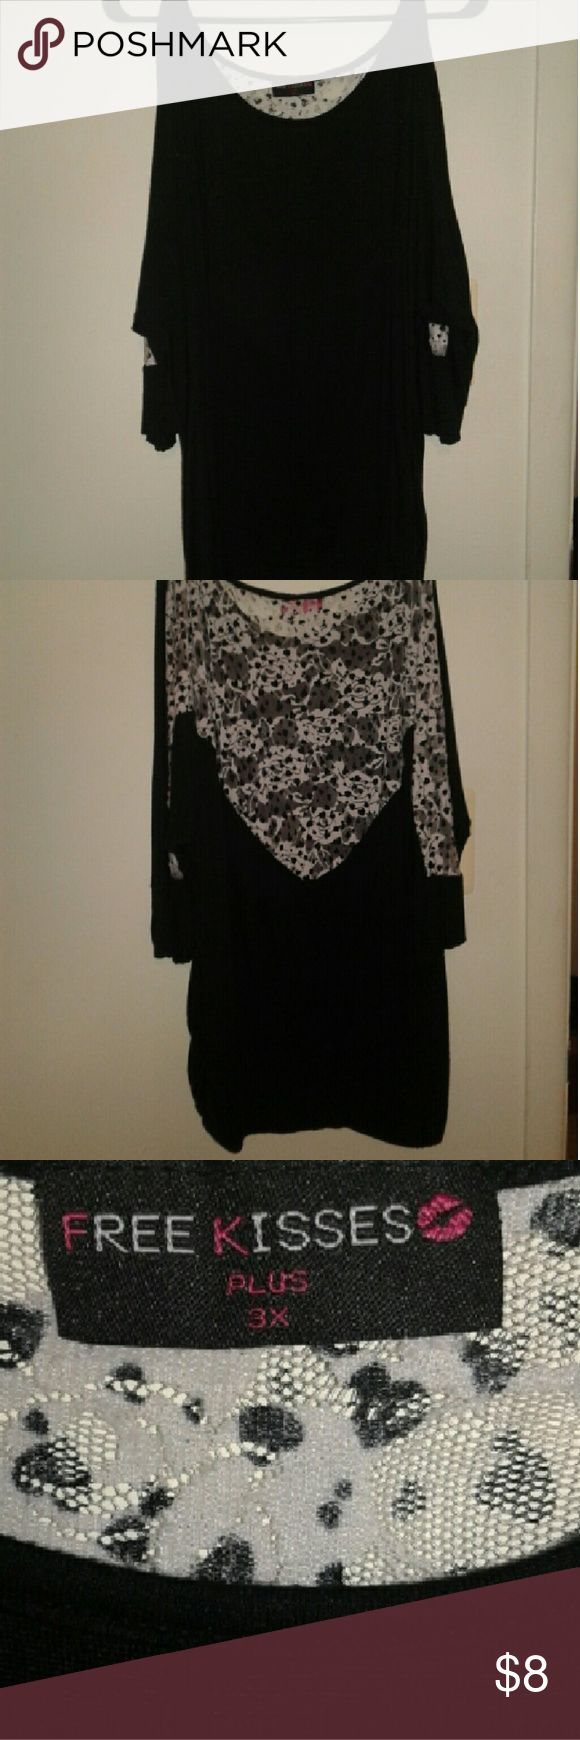 Cute 3x plus size sheer back top Its a 3x plus size i wear a XL and it looks great its slouchy and has open shoulder sleeves  the sheer dezign on the back are flowers free kiss  Tops